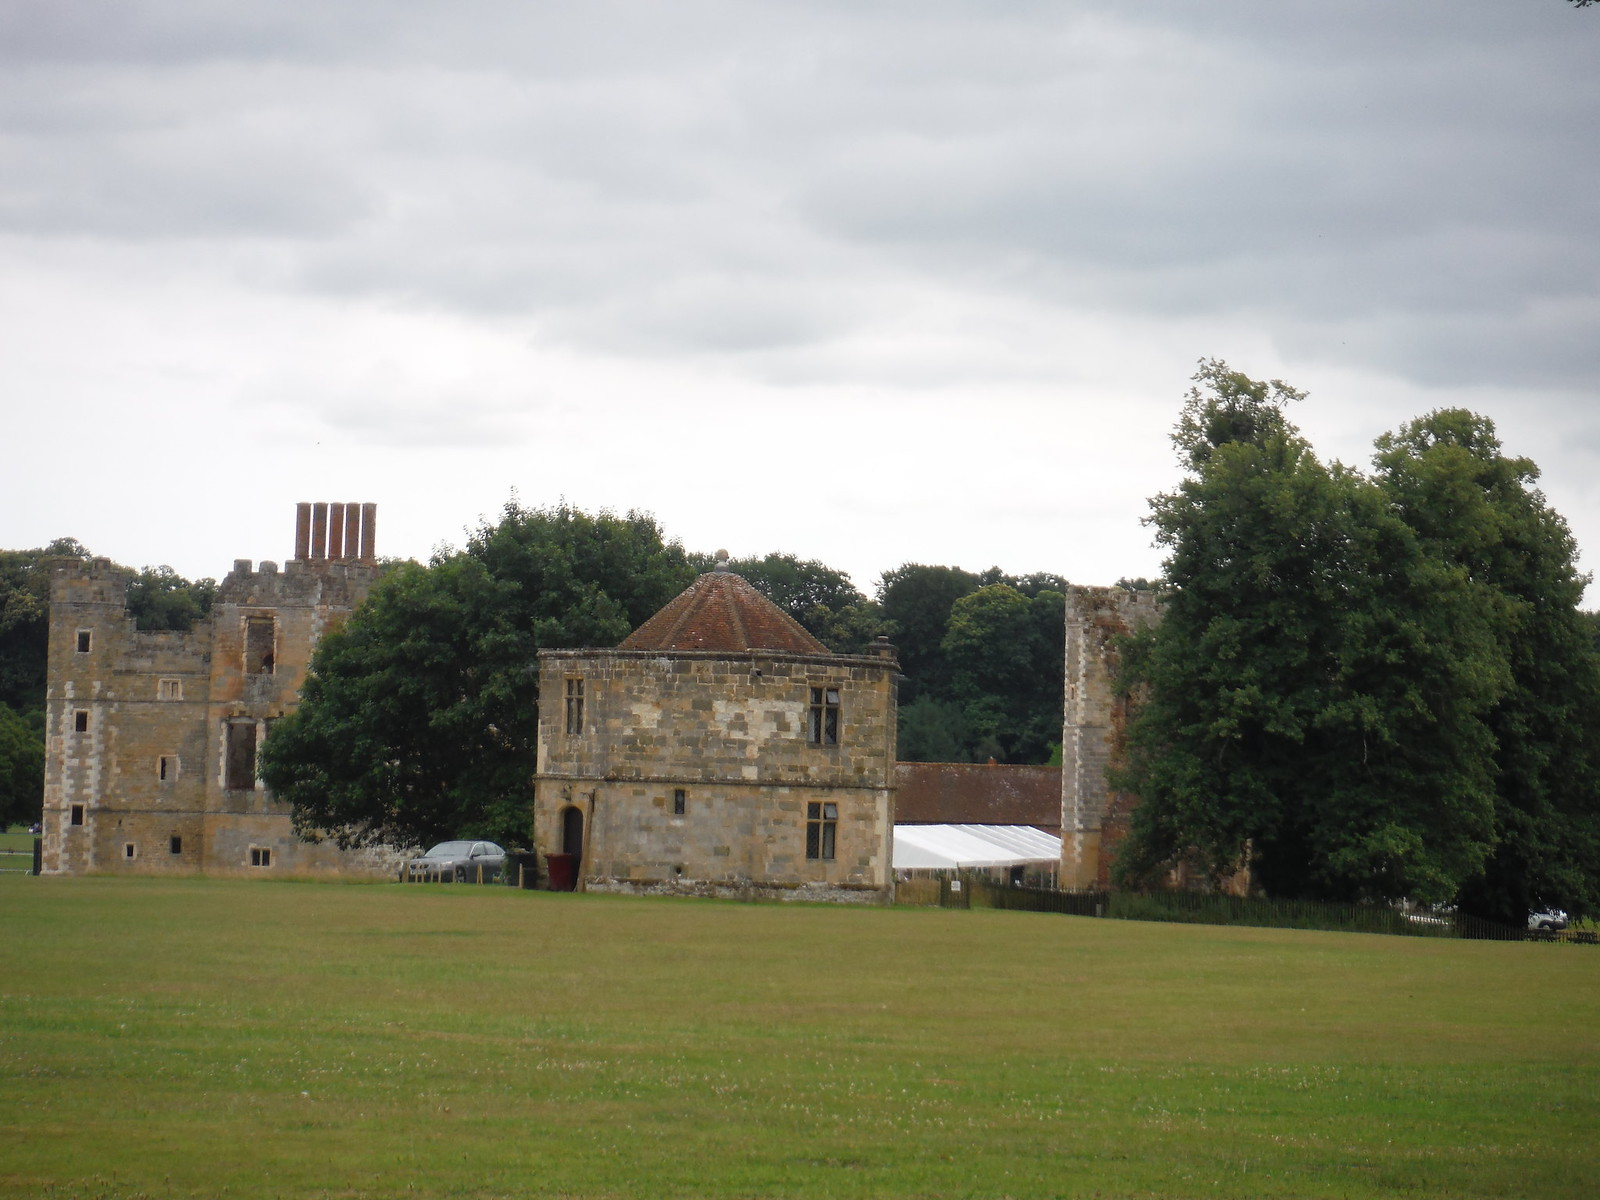 Cowdray Ruins, Midhurst SWC Walk 218 Haslemere to Midhurst (The Midhurst Way)